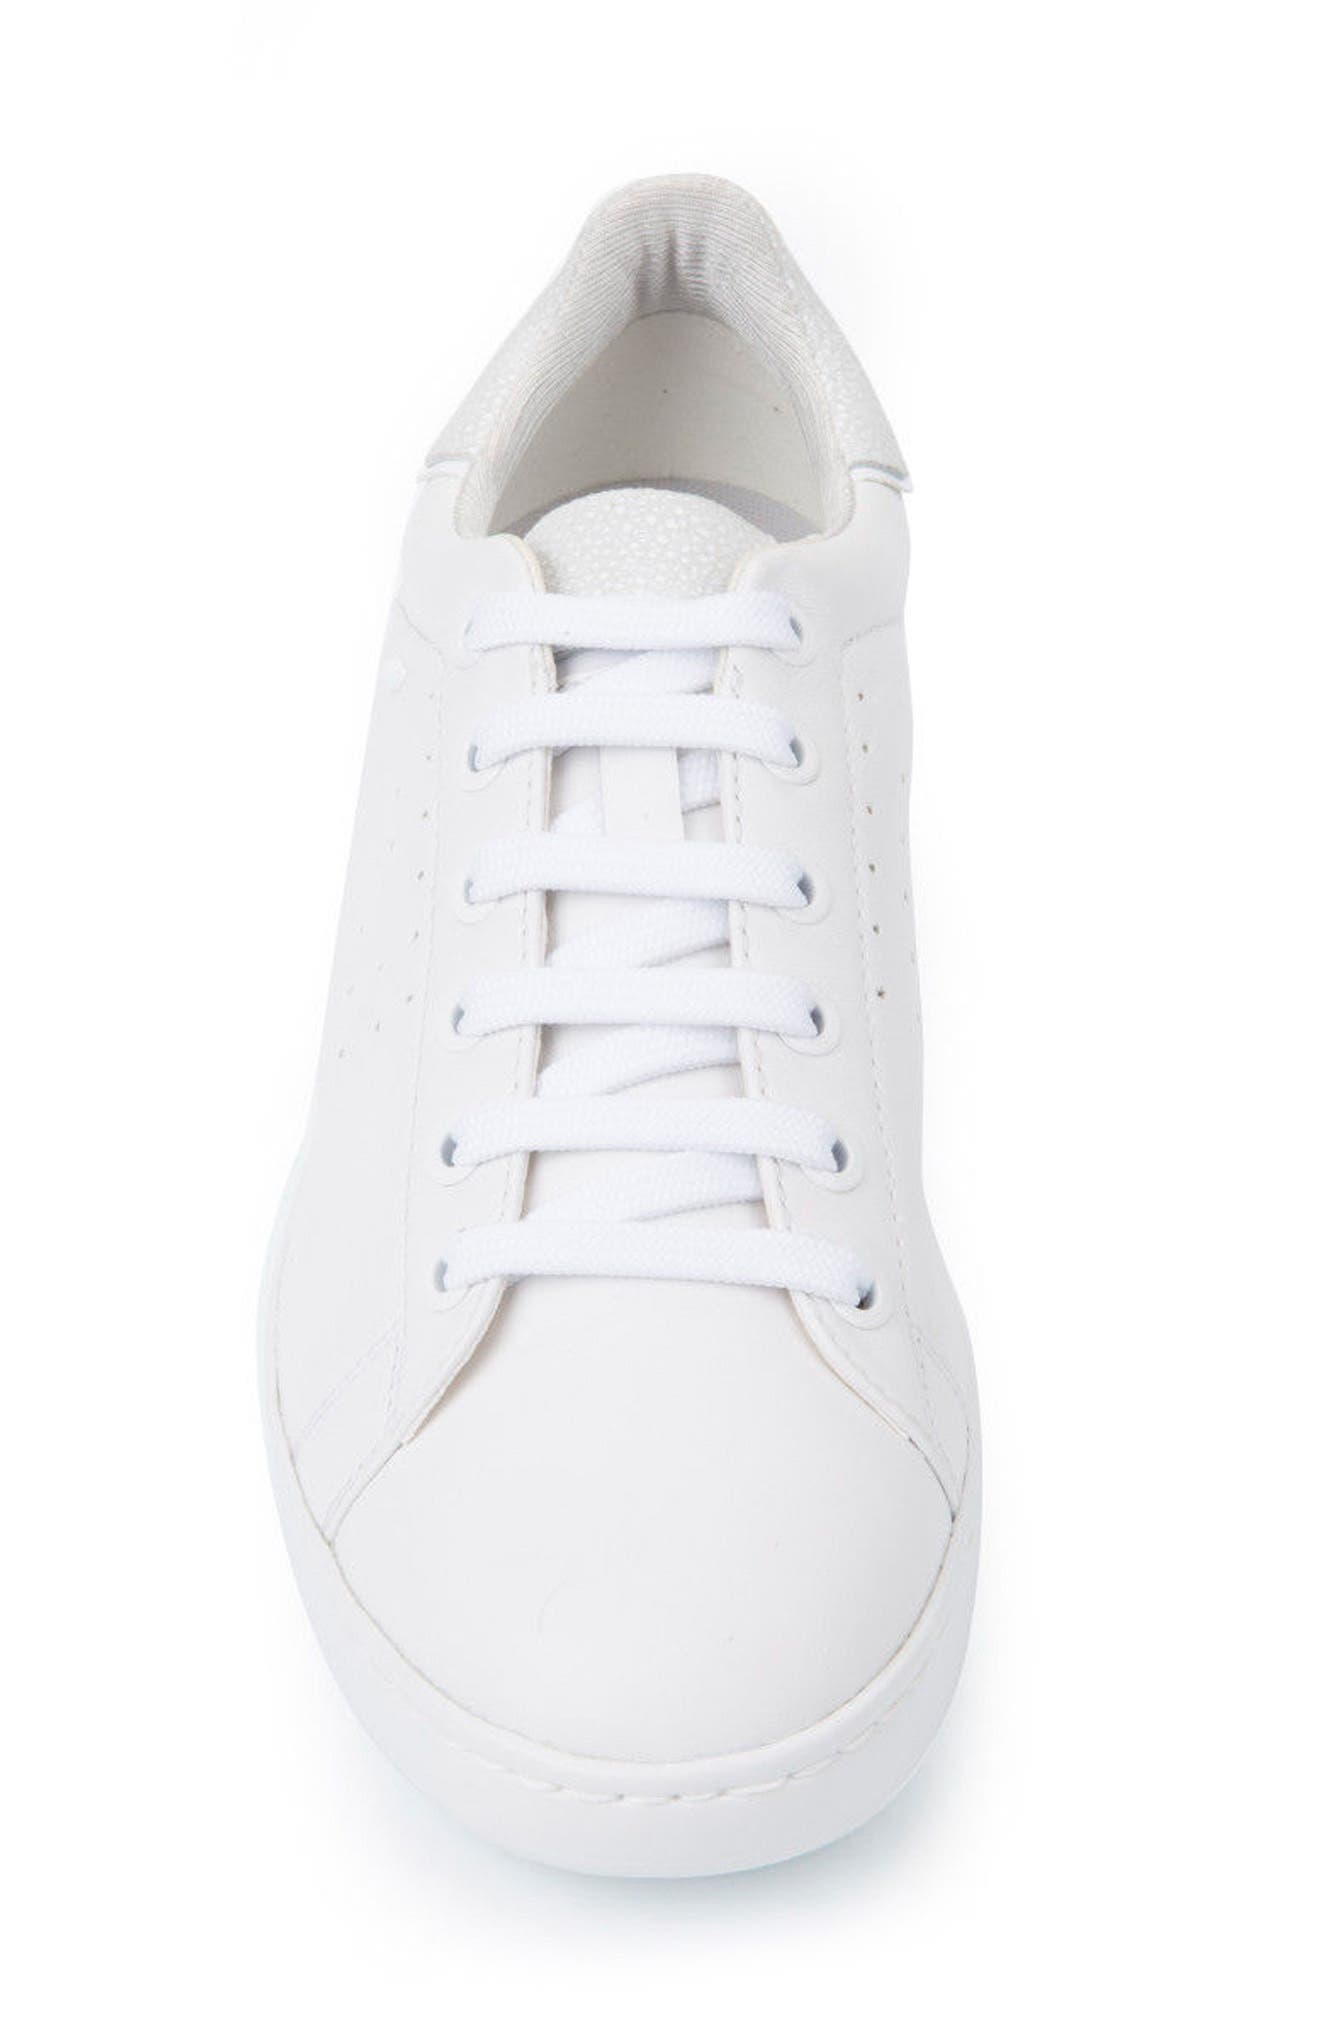 Jaysen Sneaker,                             Alternate thumbnail 4, color,                             White Leather